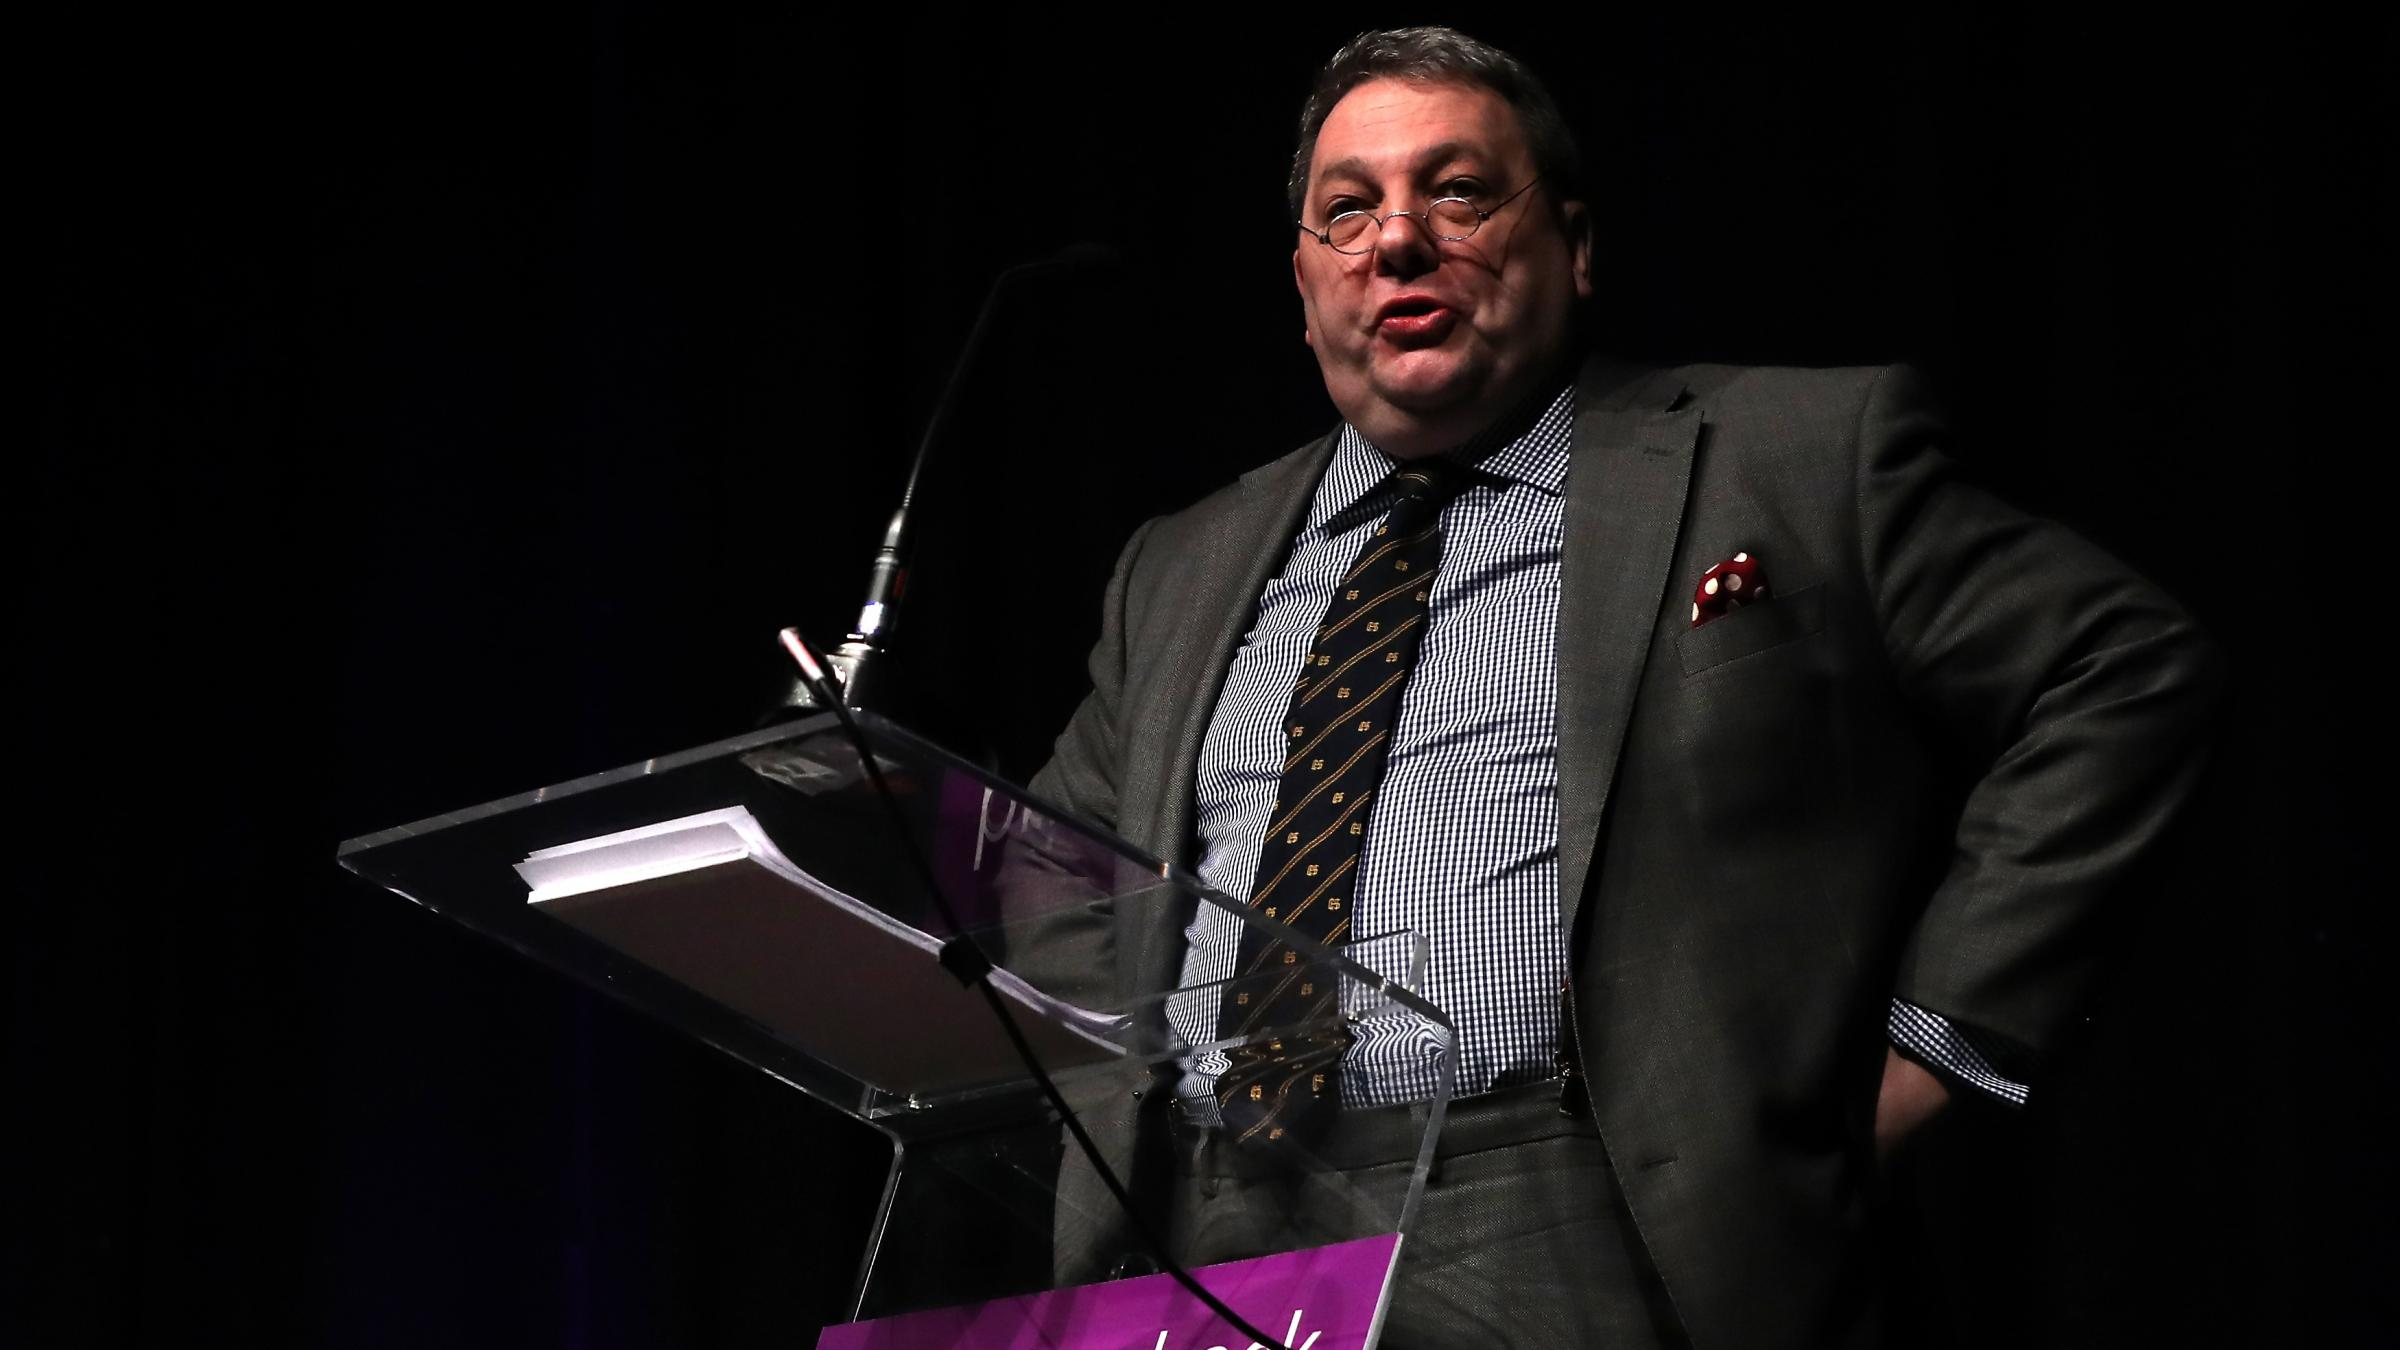 Ukip Scottish leader David Coburn in bid for top job